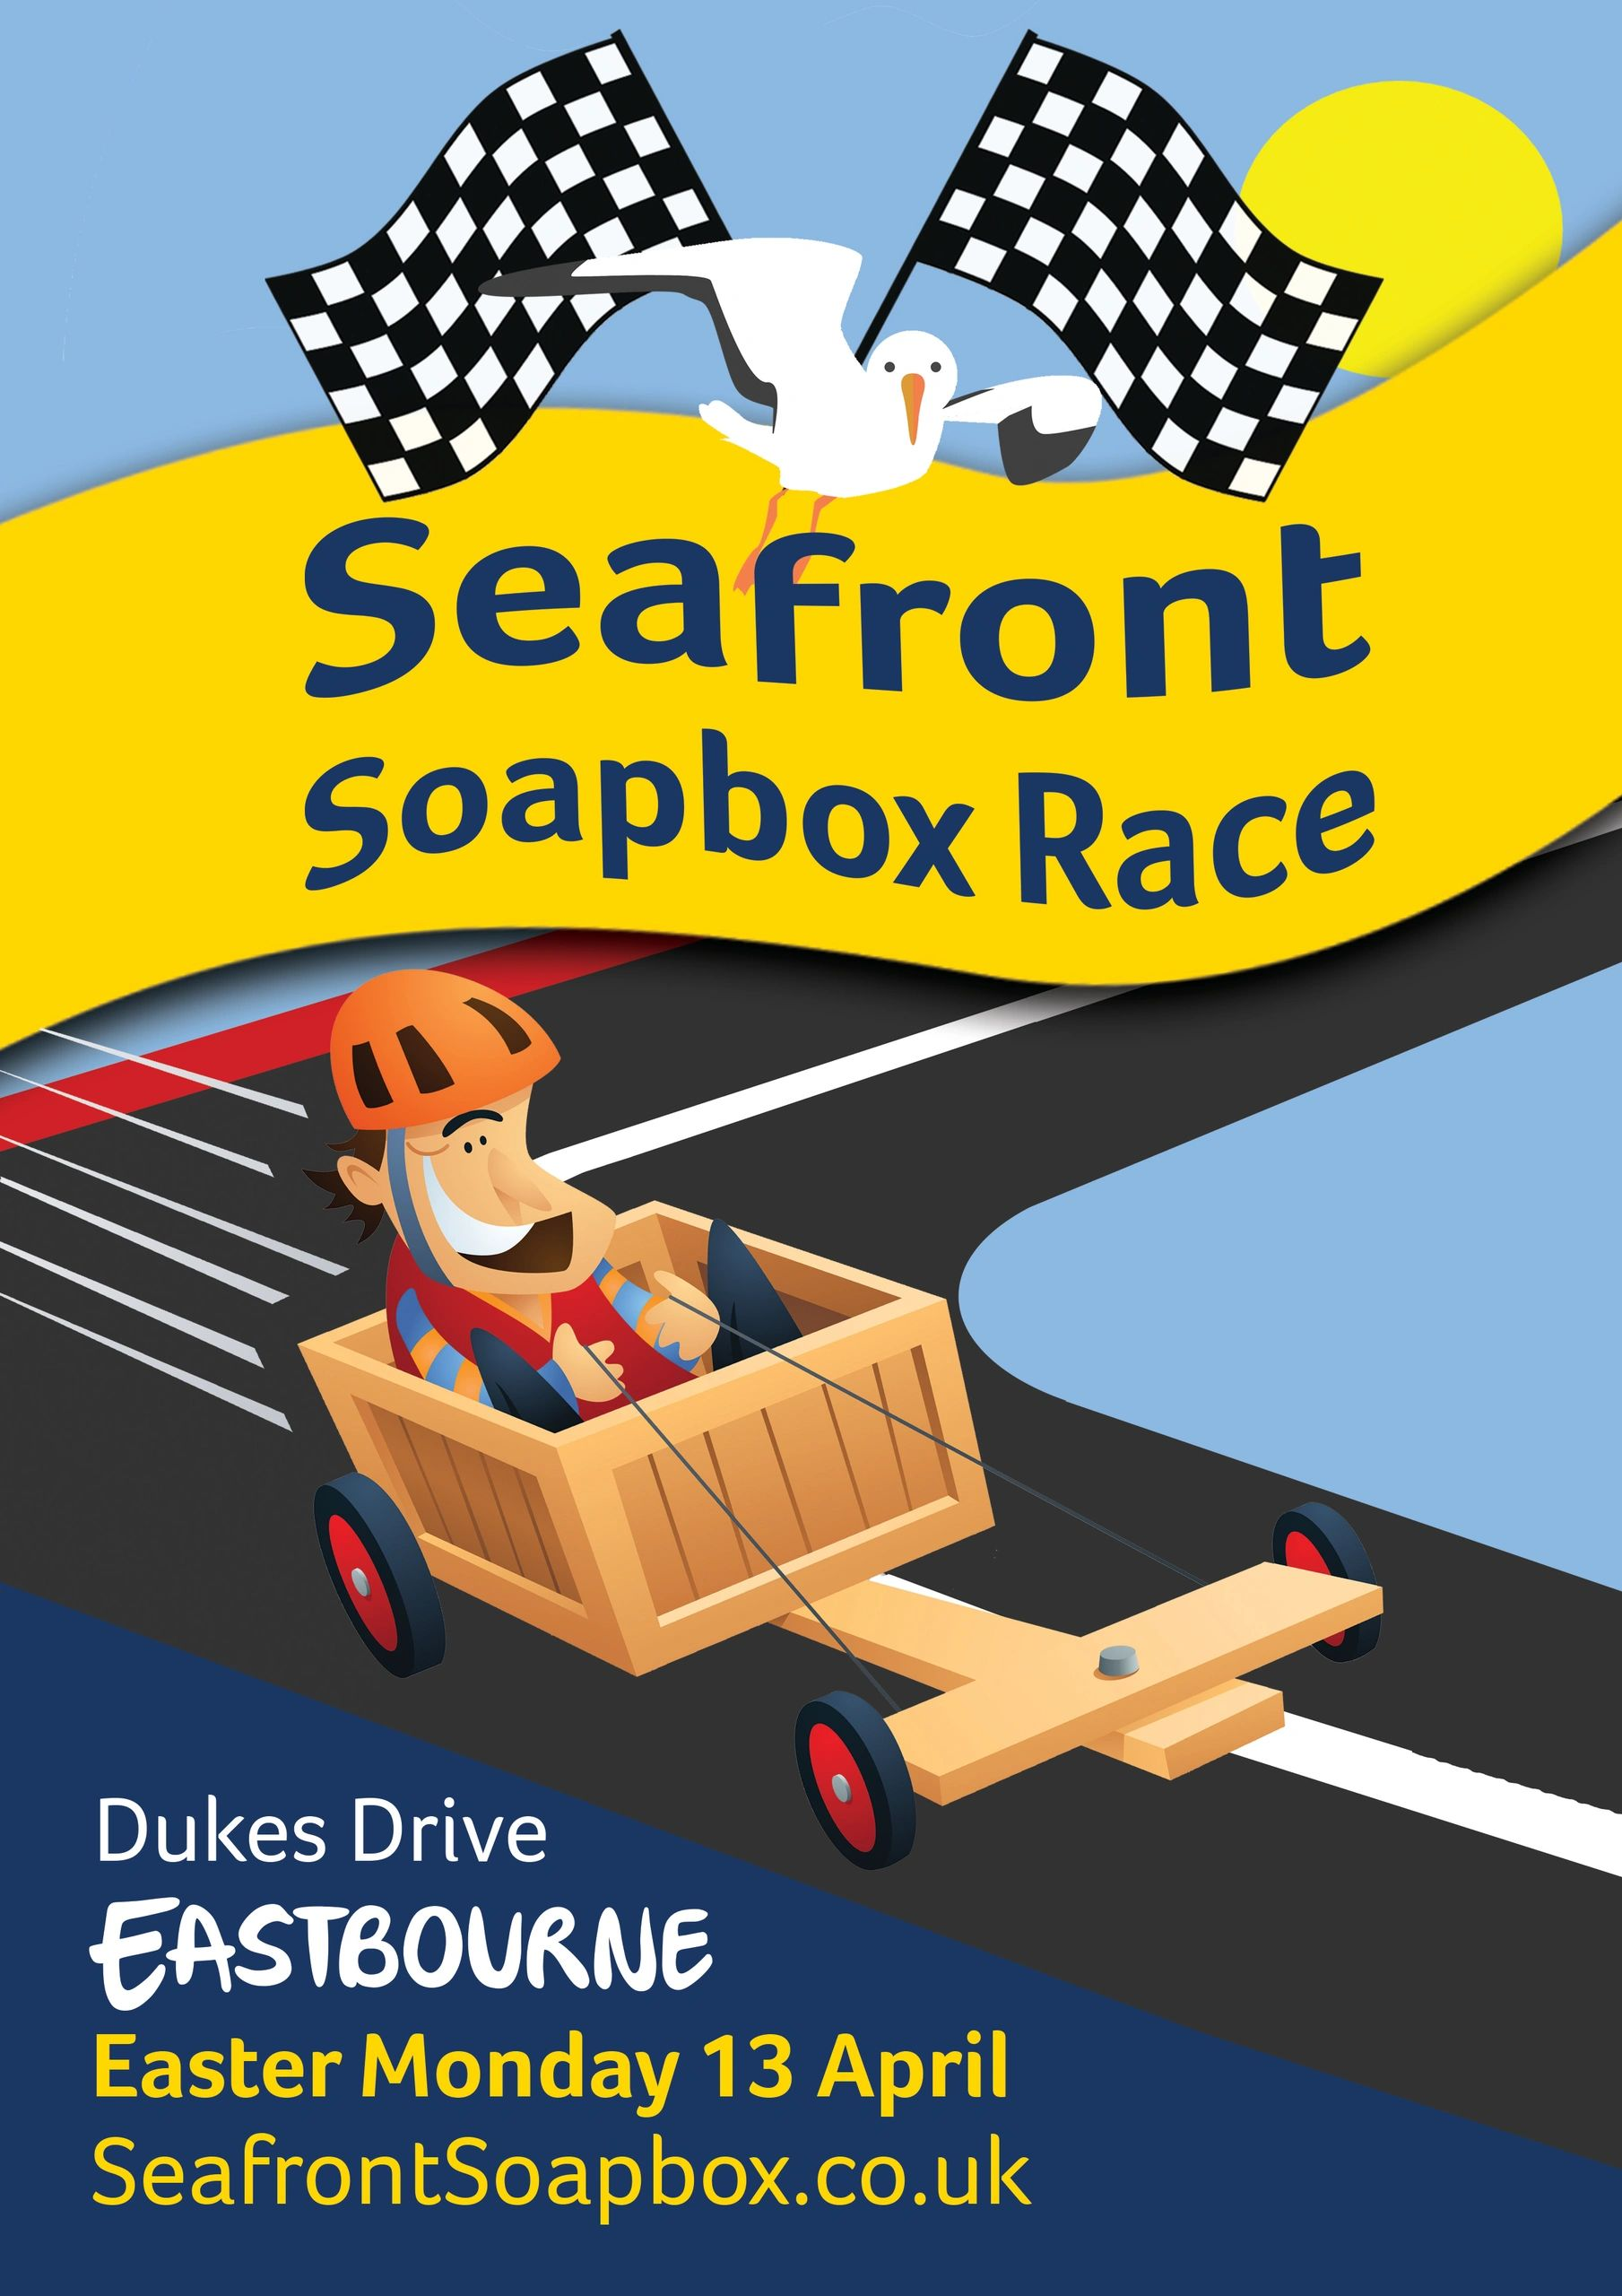 Eastbourne Seafront Soapbox Race April 2020